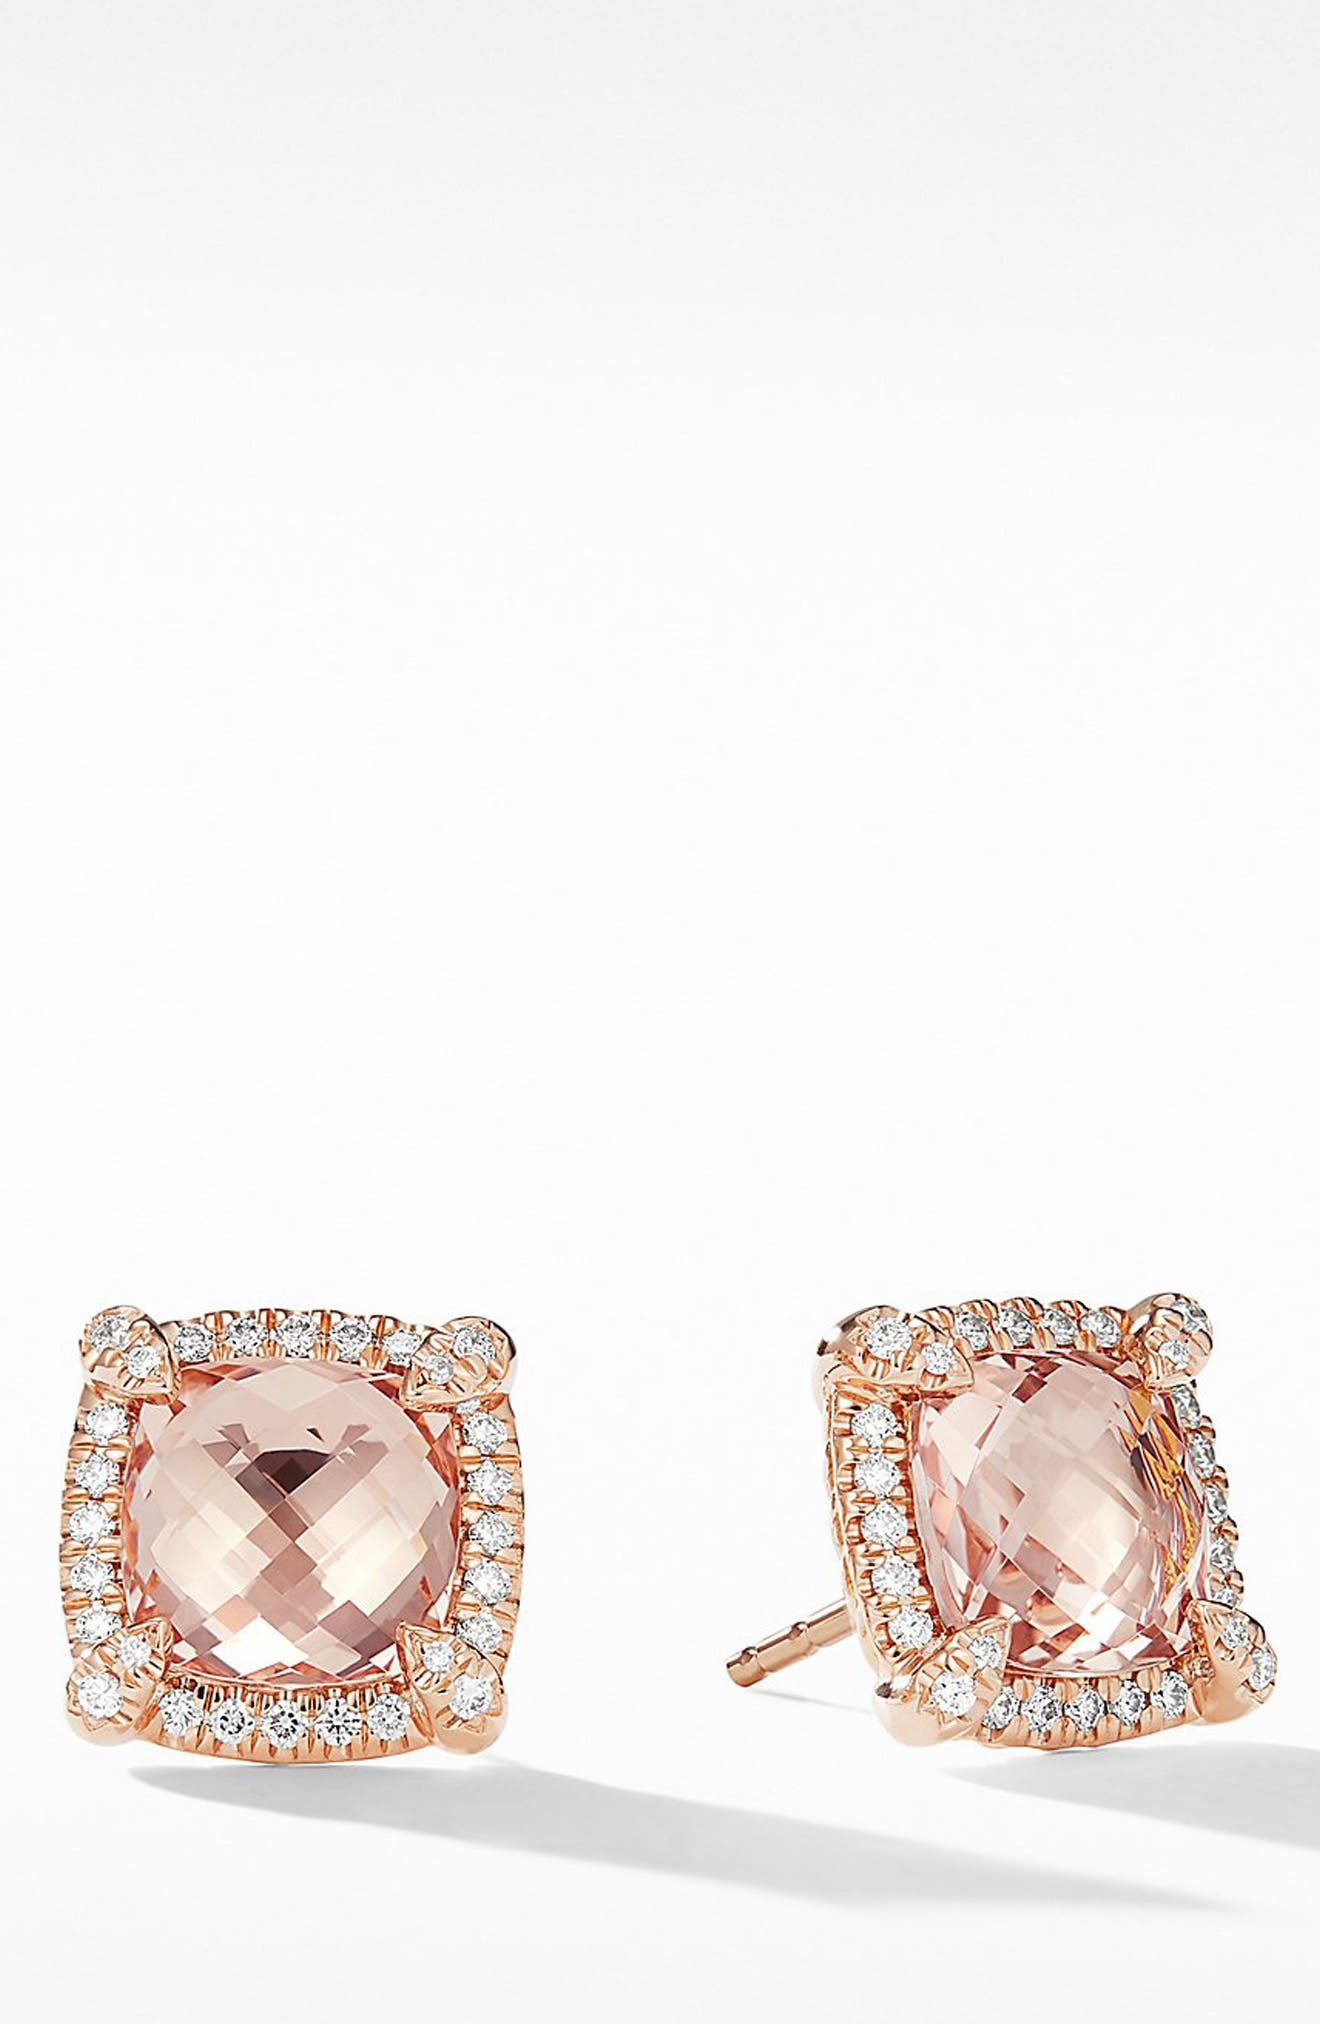 Châtelaine Pavé Bezel Stud Earrings with Morganite and Diamonds in 18K Rose Gold,                         Main,                         color, ROSE GOLD/ DIAMOND/ MORGANITE